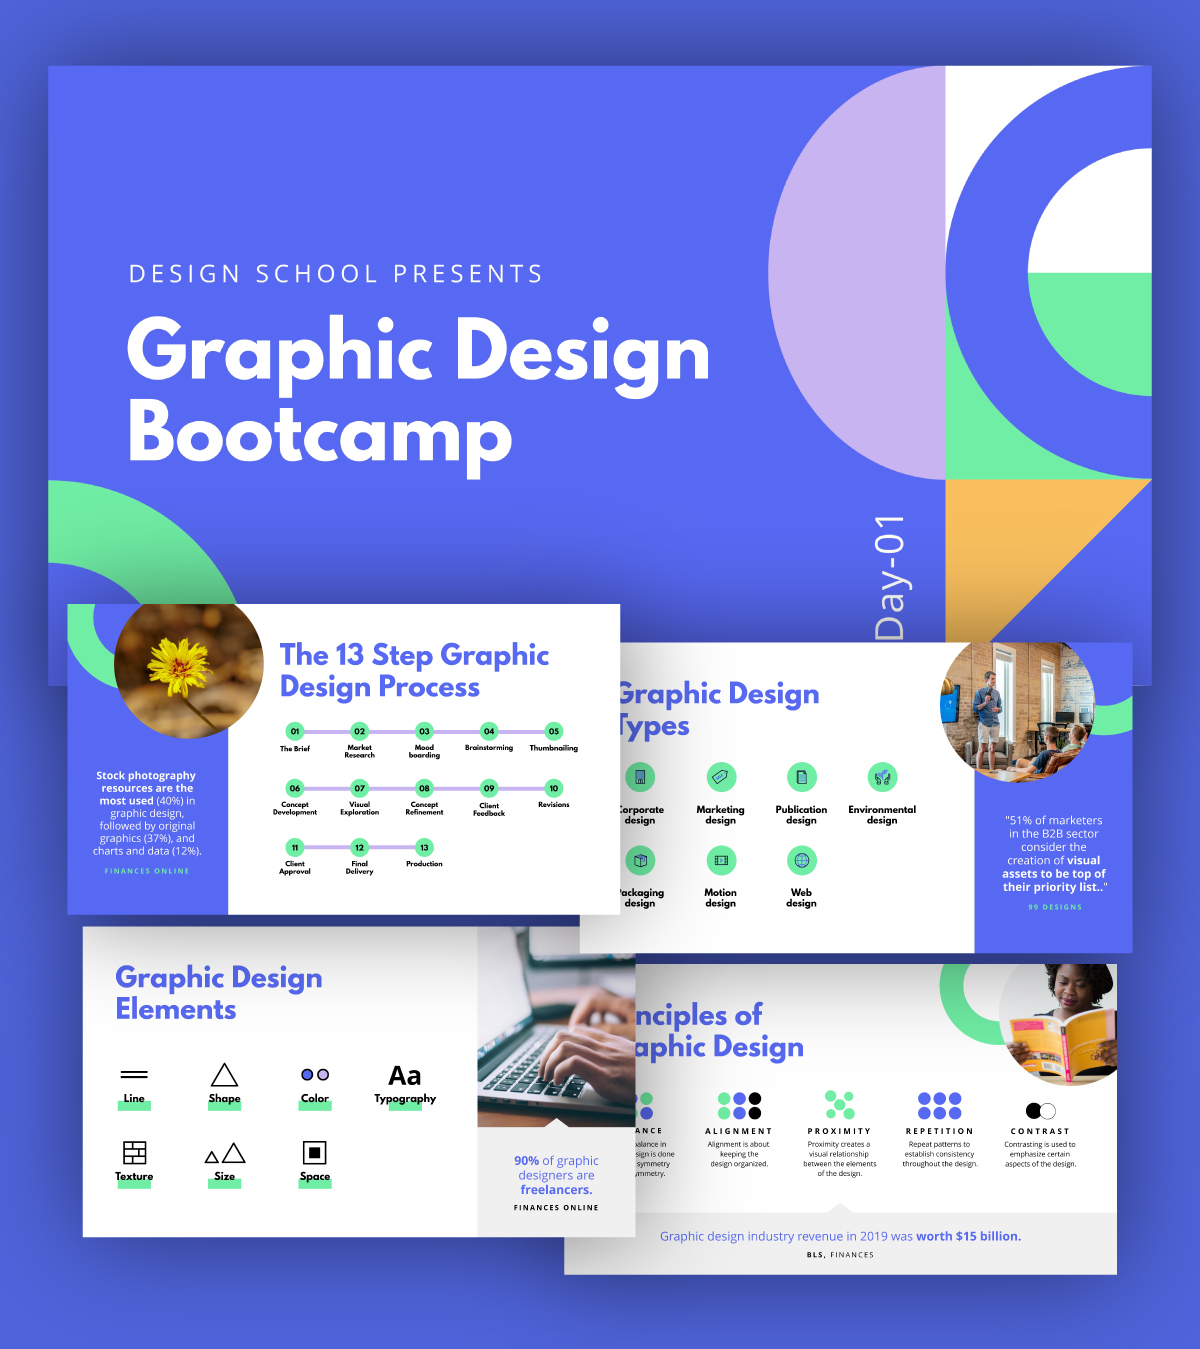 A graphic design bootcamp presentation template available to edit in Visme.